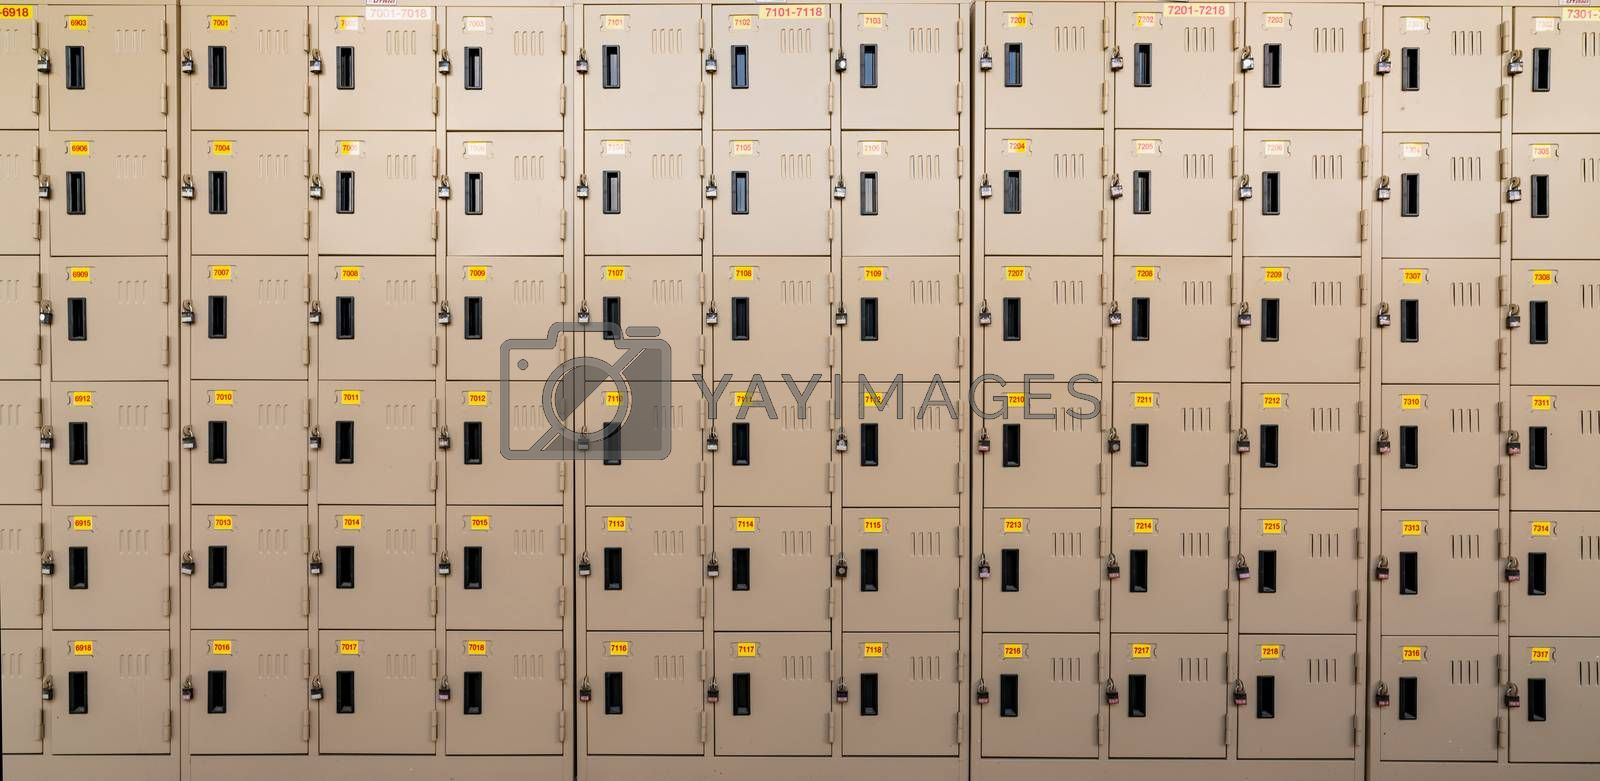 Closeup beige locker with lock and numbered yellow tags at locker room. Locker for safety and security storage. Row of locker with locked door background.